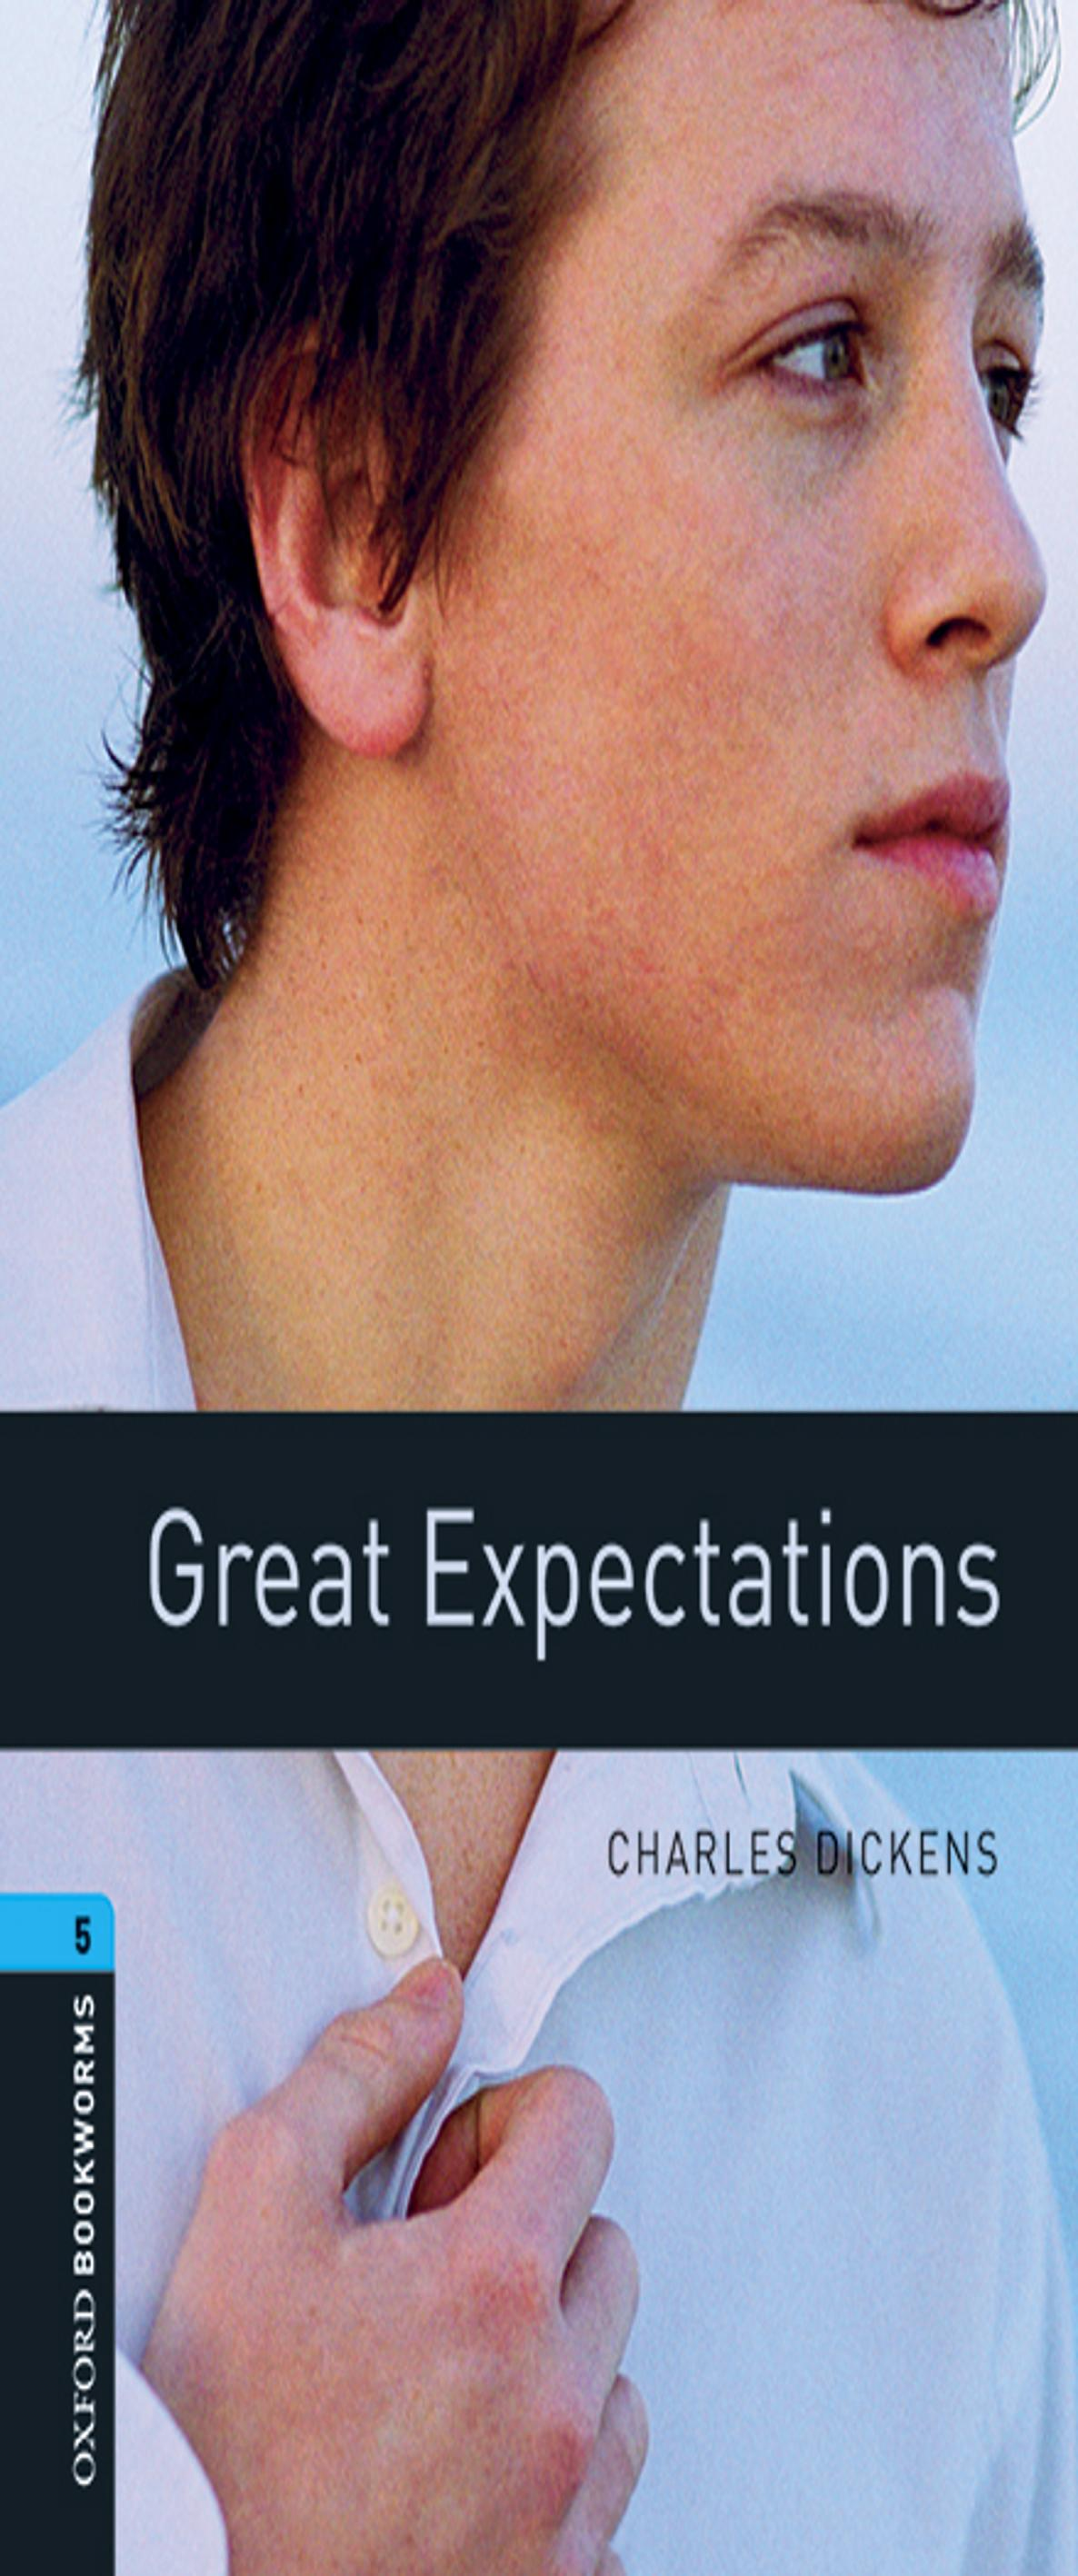 GREAT EXPECTATIONS + MP3 - OBL 5